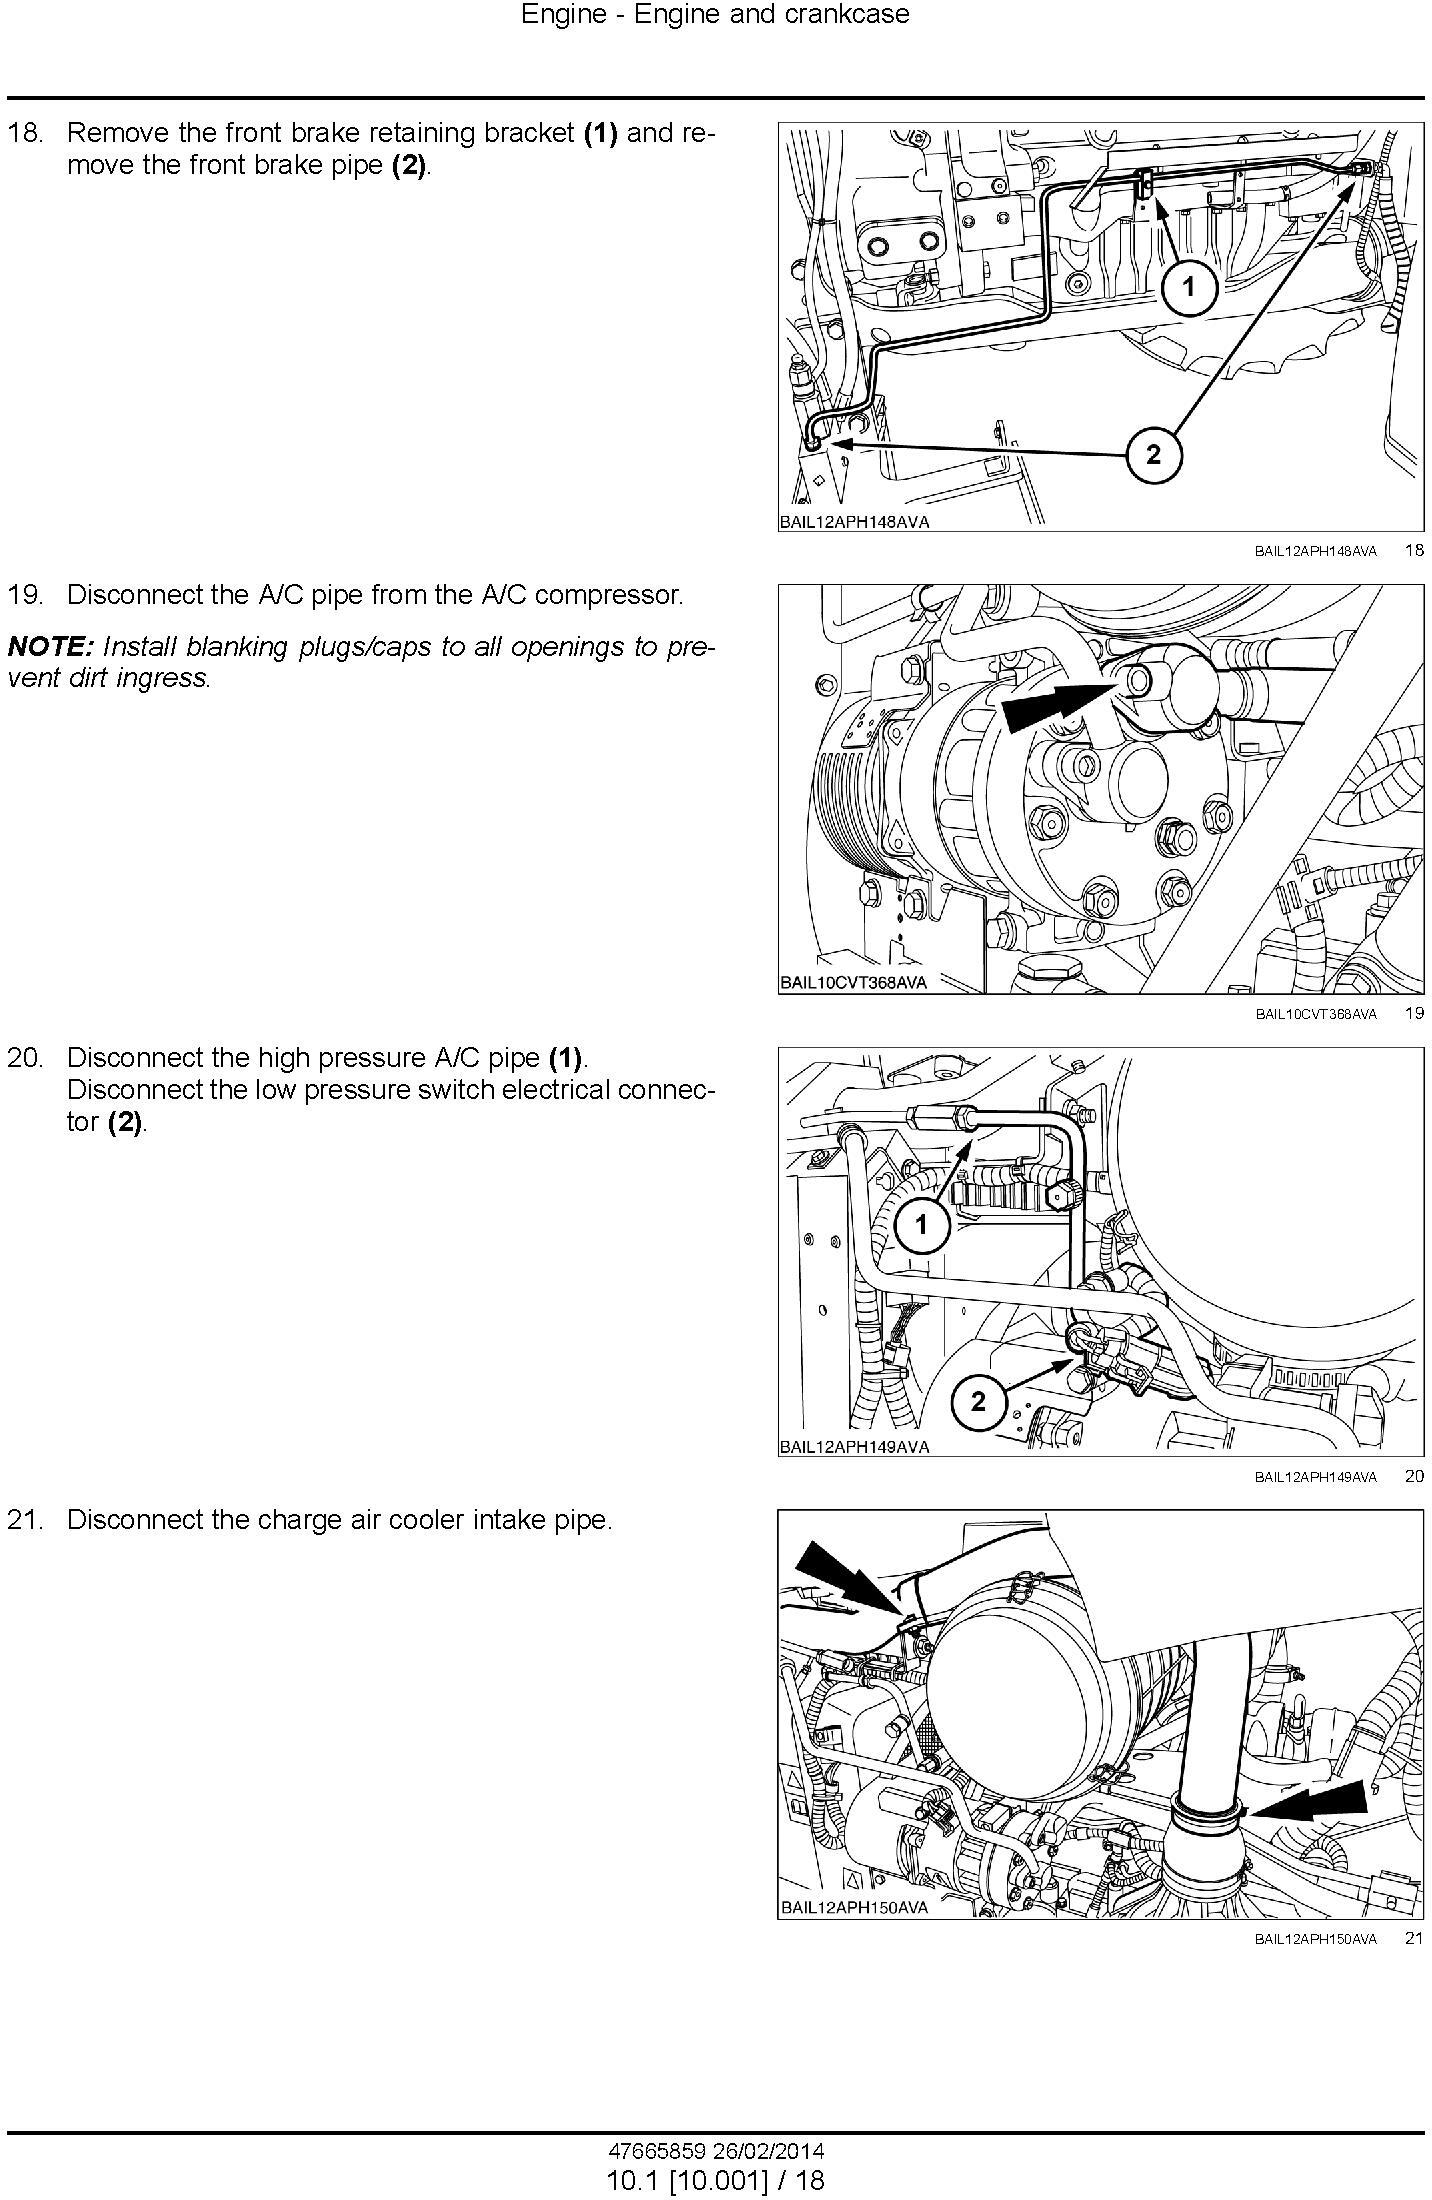 New Holland T6.120, T6.140, T6.150, T6.155, T6.160, T6.165, T6.175 European Tractor Service Manual - 1